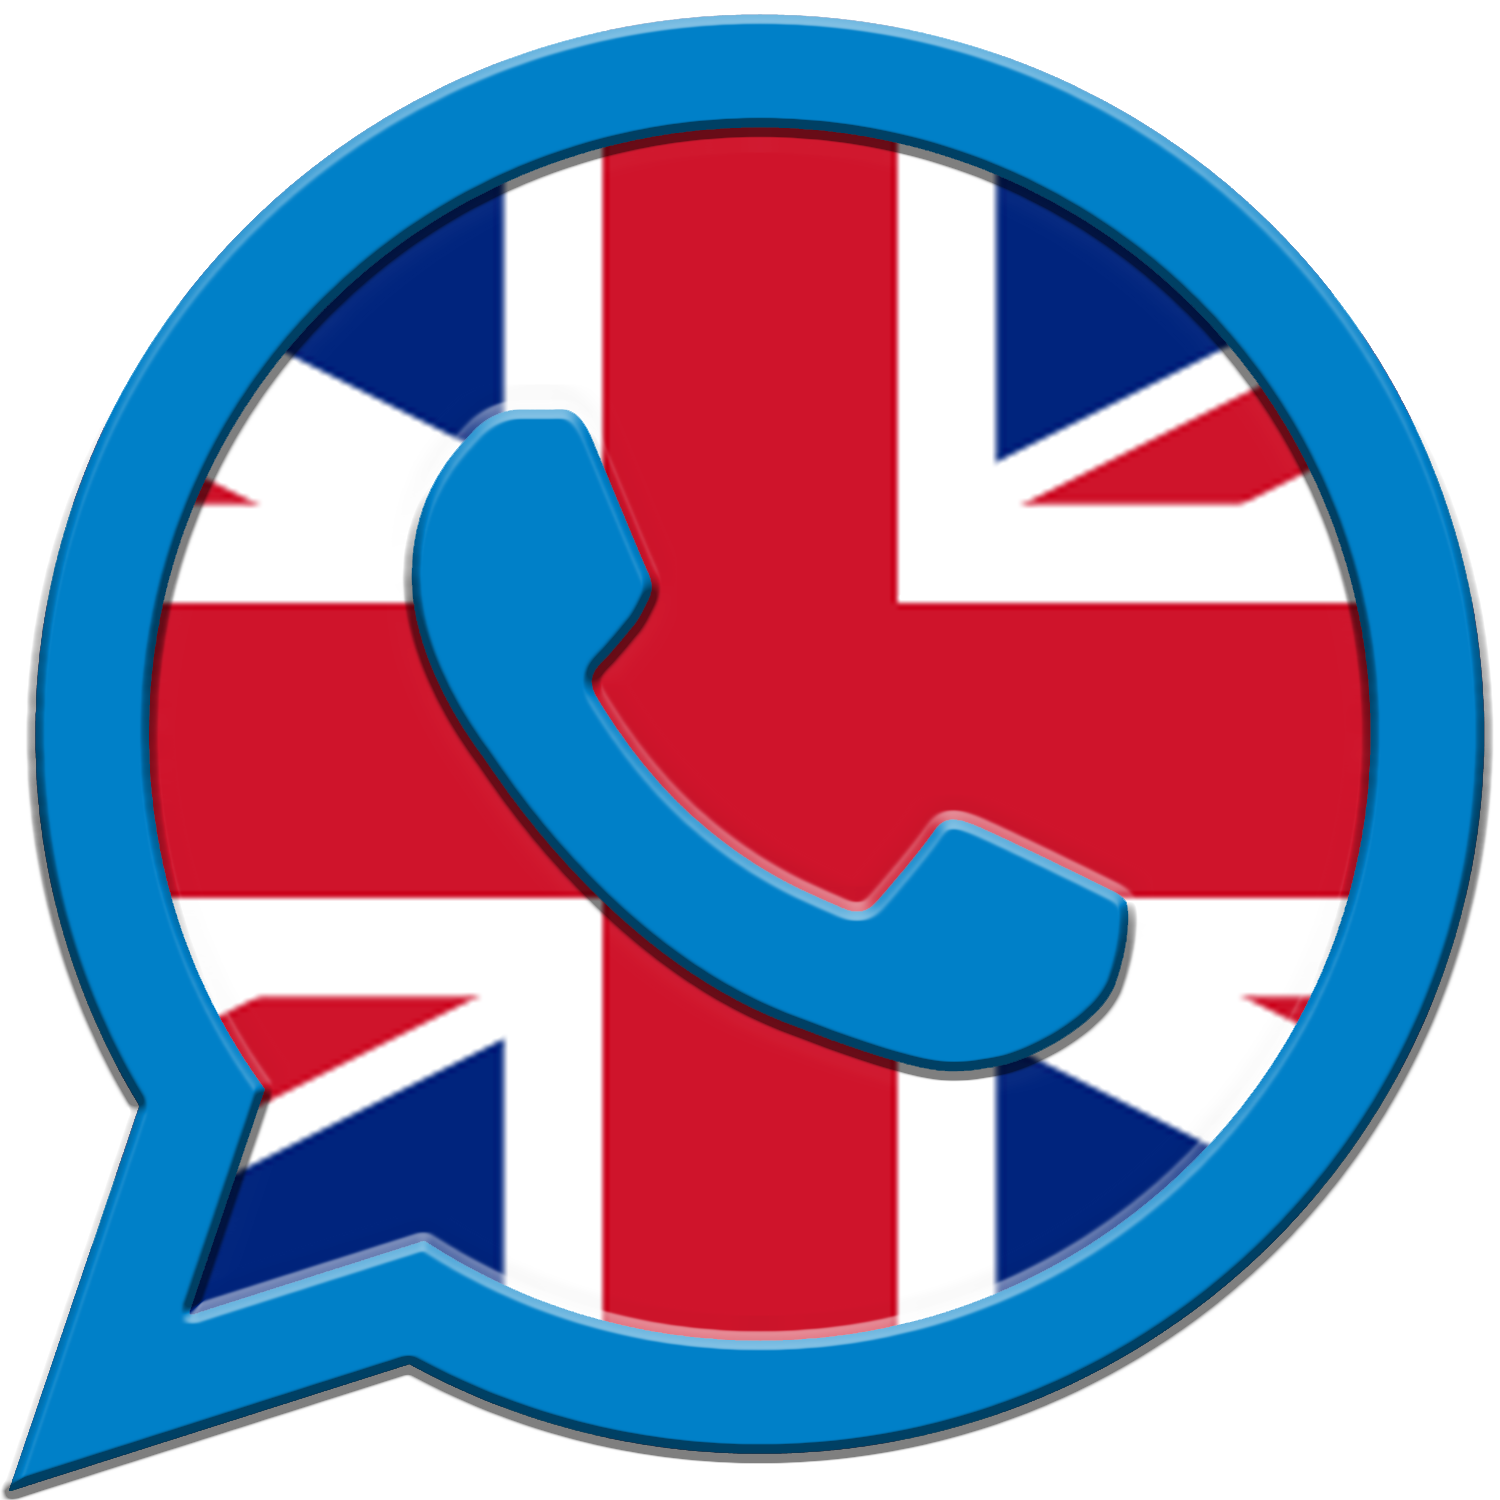 english flag icon for pools maintenance